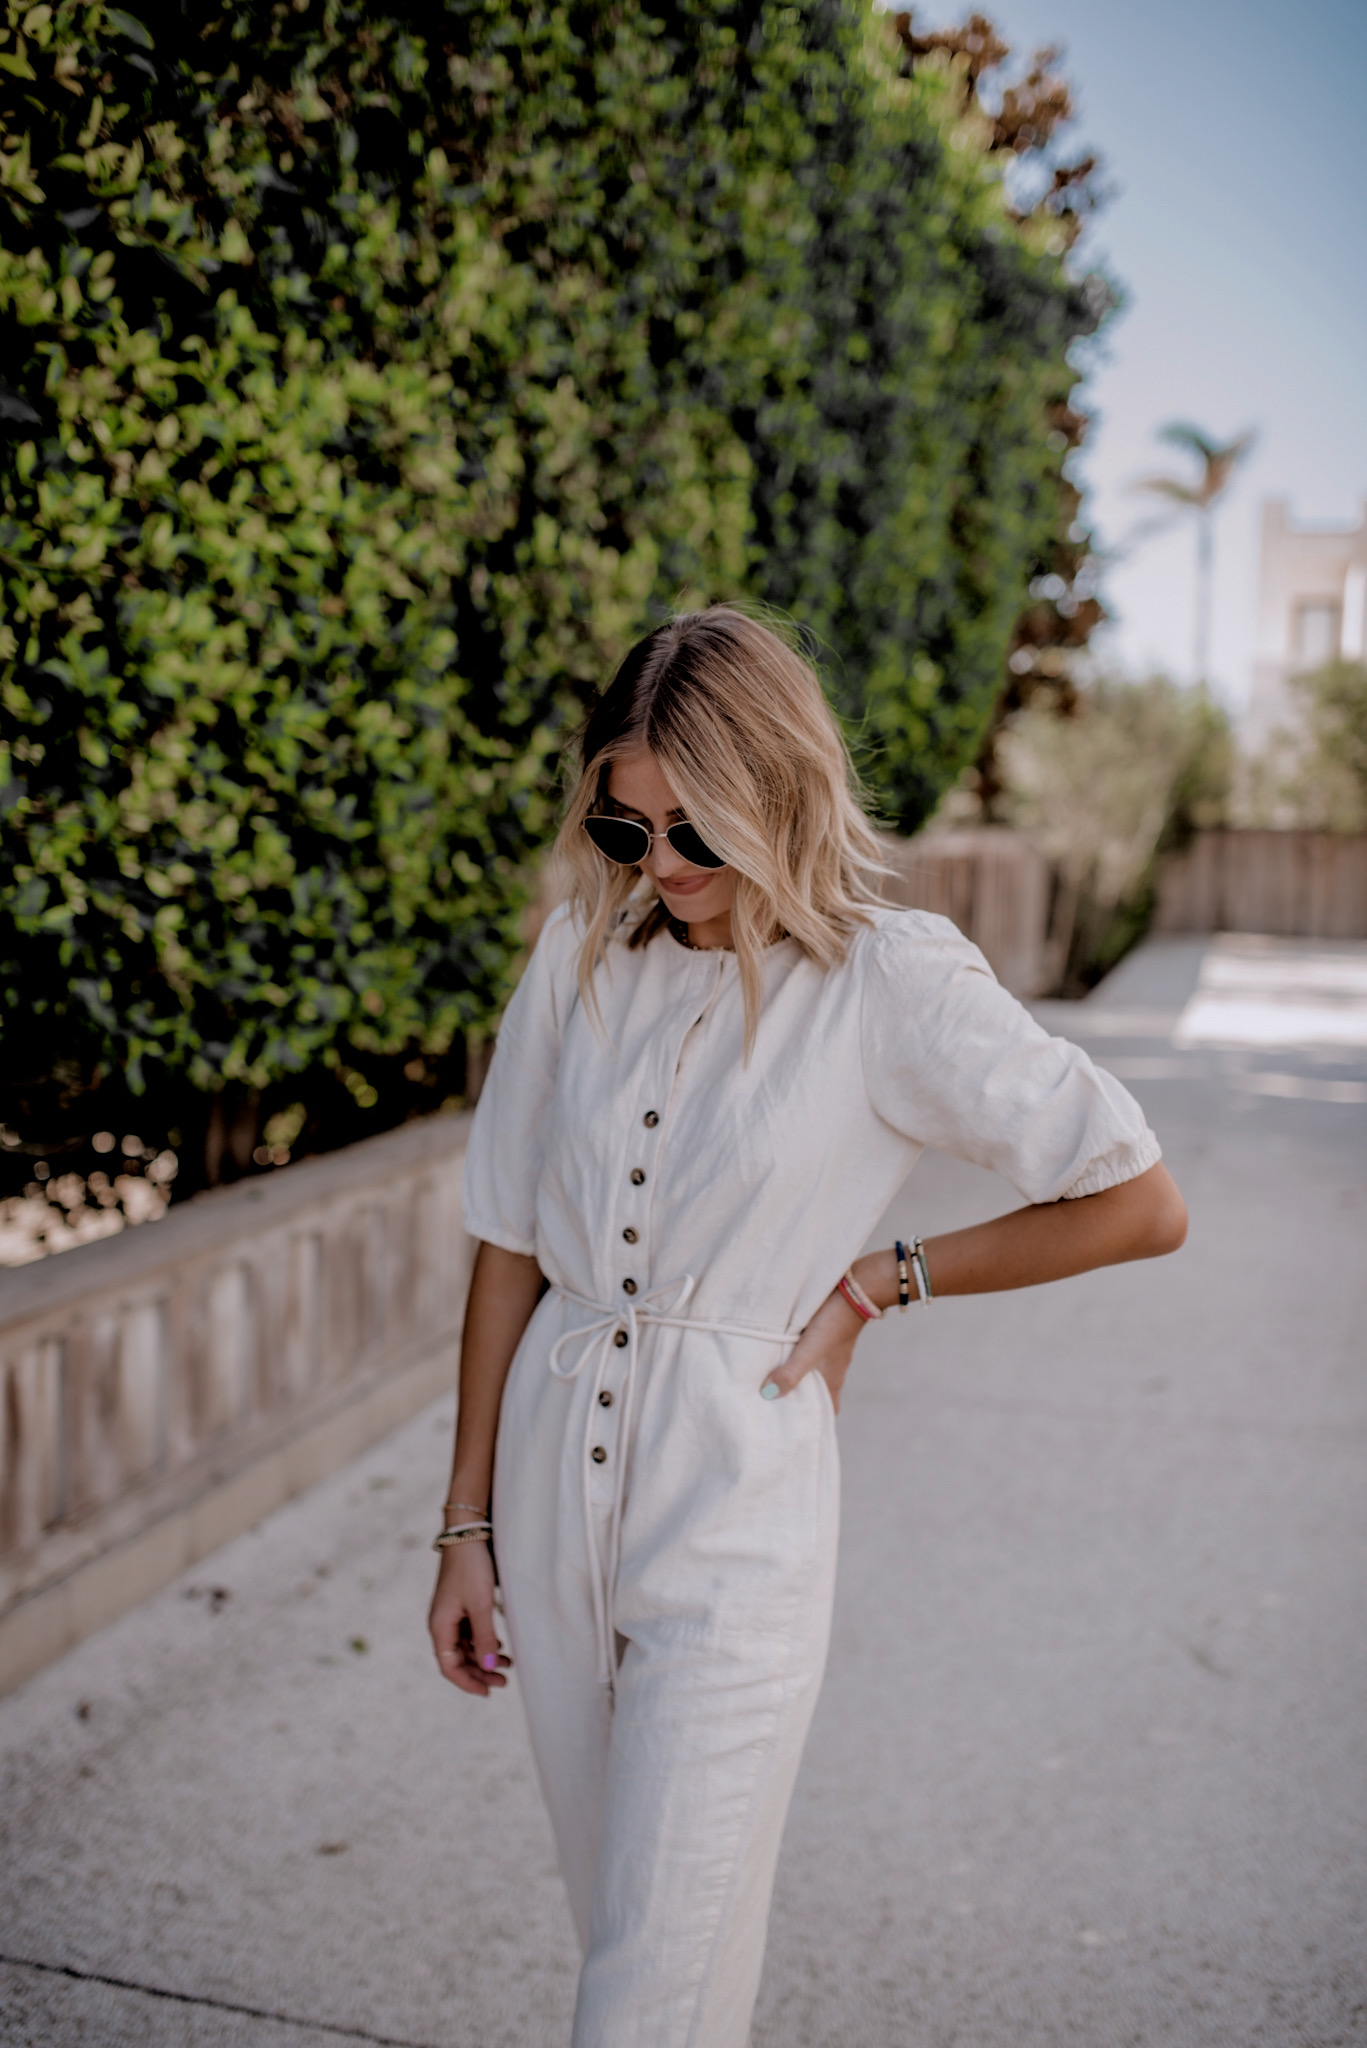 Fall Clothing by popular San Diego fashion blog, Navy Grace: image of a woman walking outside and wearing a Madewell Linen-Blend Puff-Sleeve Tassel-Tie Jumpsuit, Loeffler Randall Daphne Knot Flat Sandals, Le Specs Echo Sunglasses, and holding a Small Faye Leather Crossbody Bag CHLOÉ.